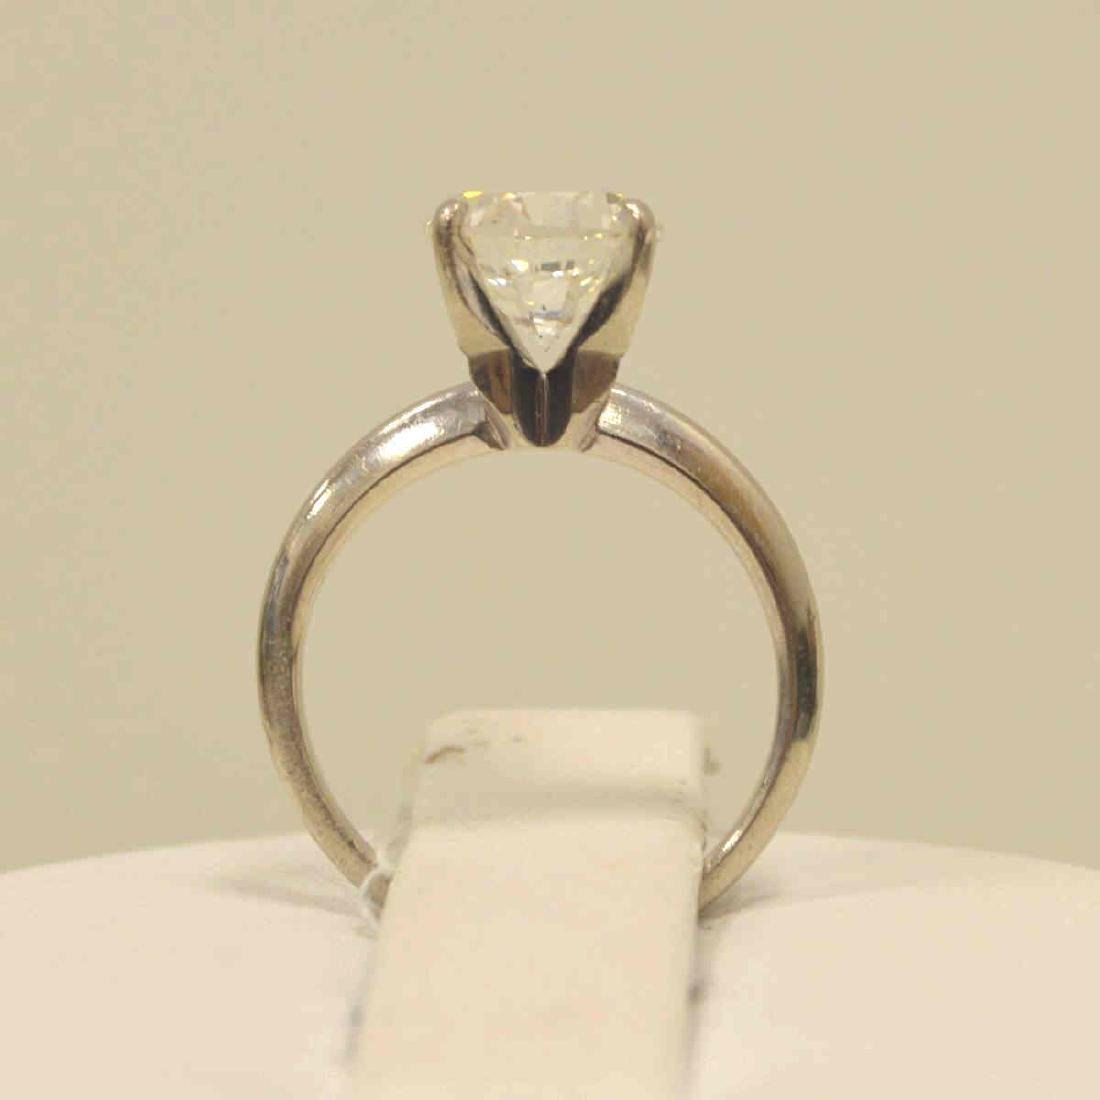 2.50ct. Diamond Solitaire Engagement Ring - 3